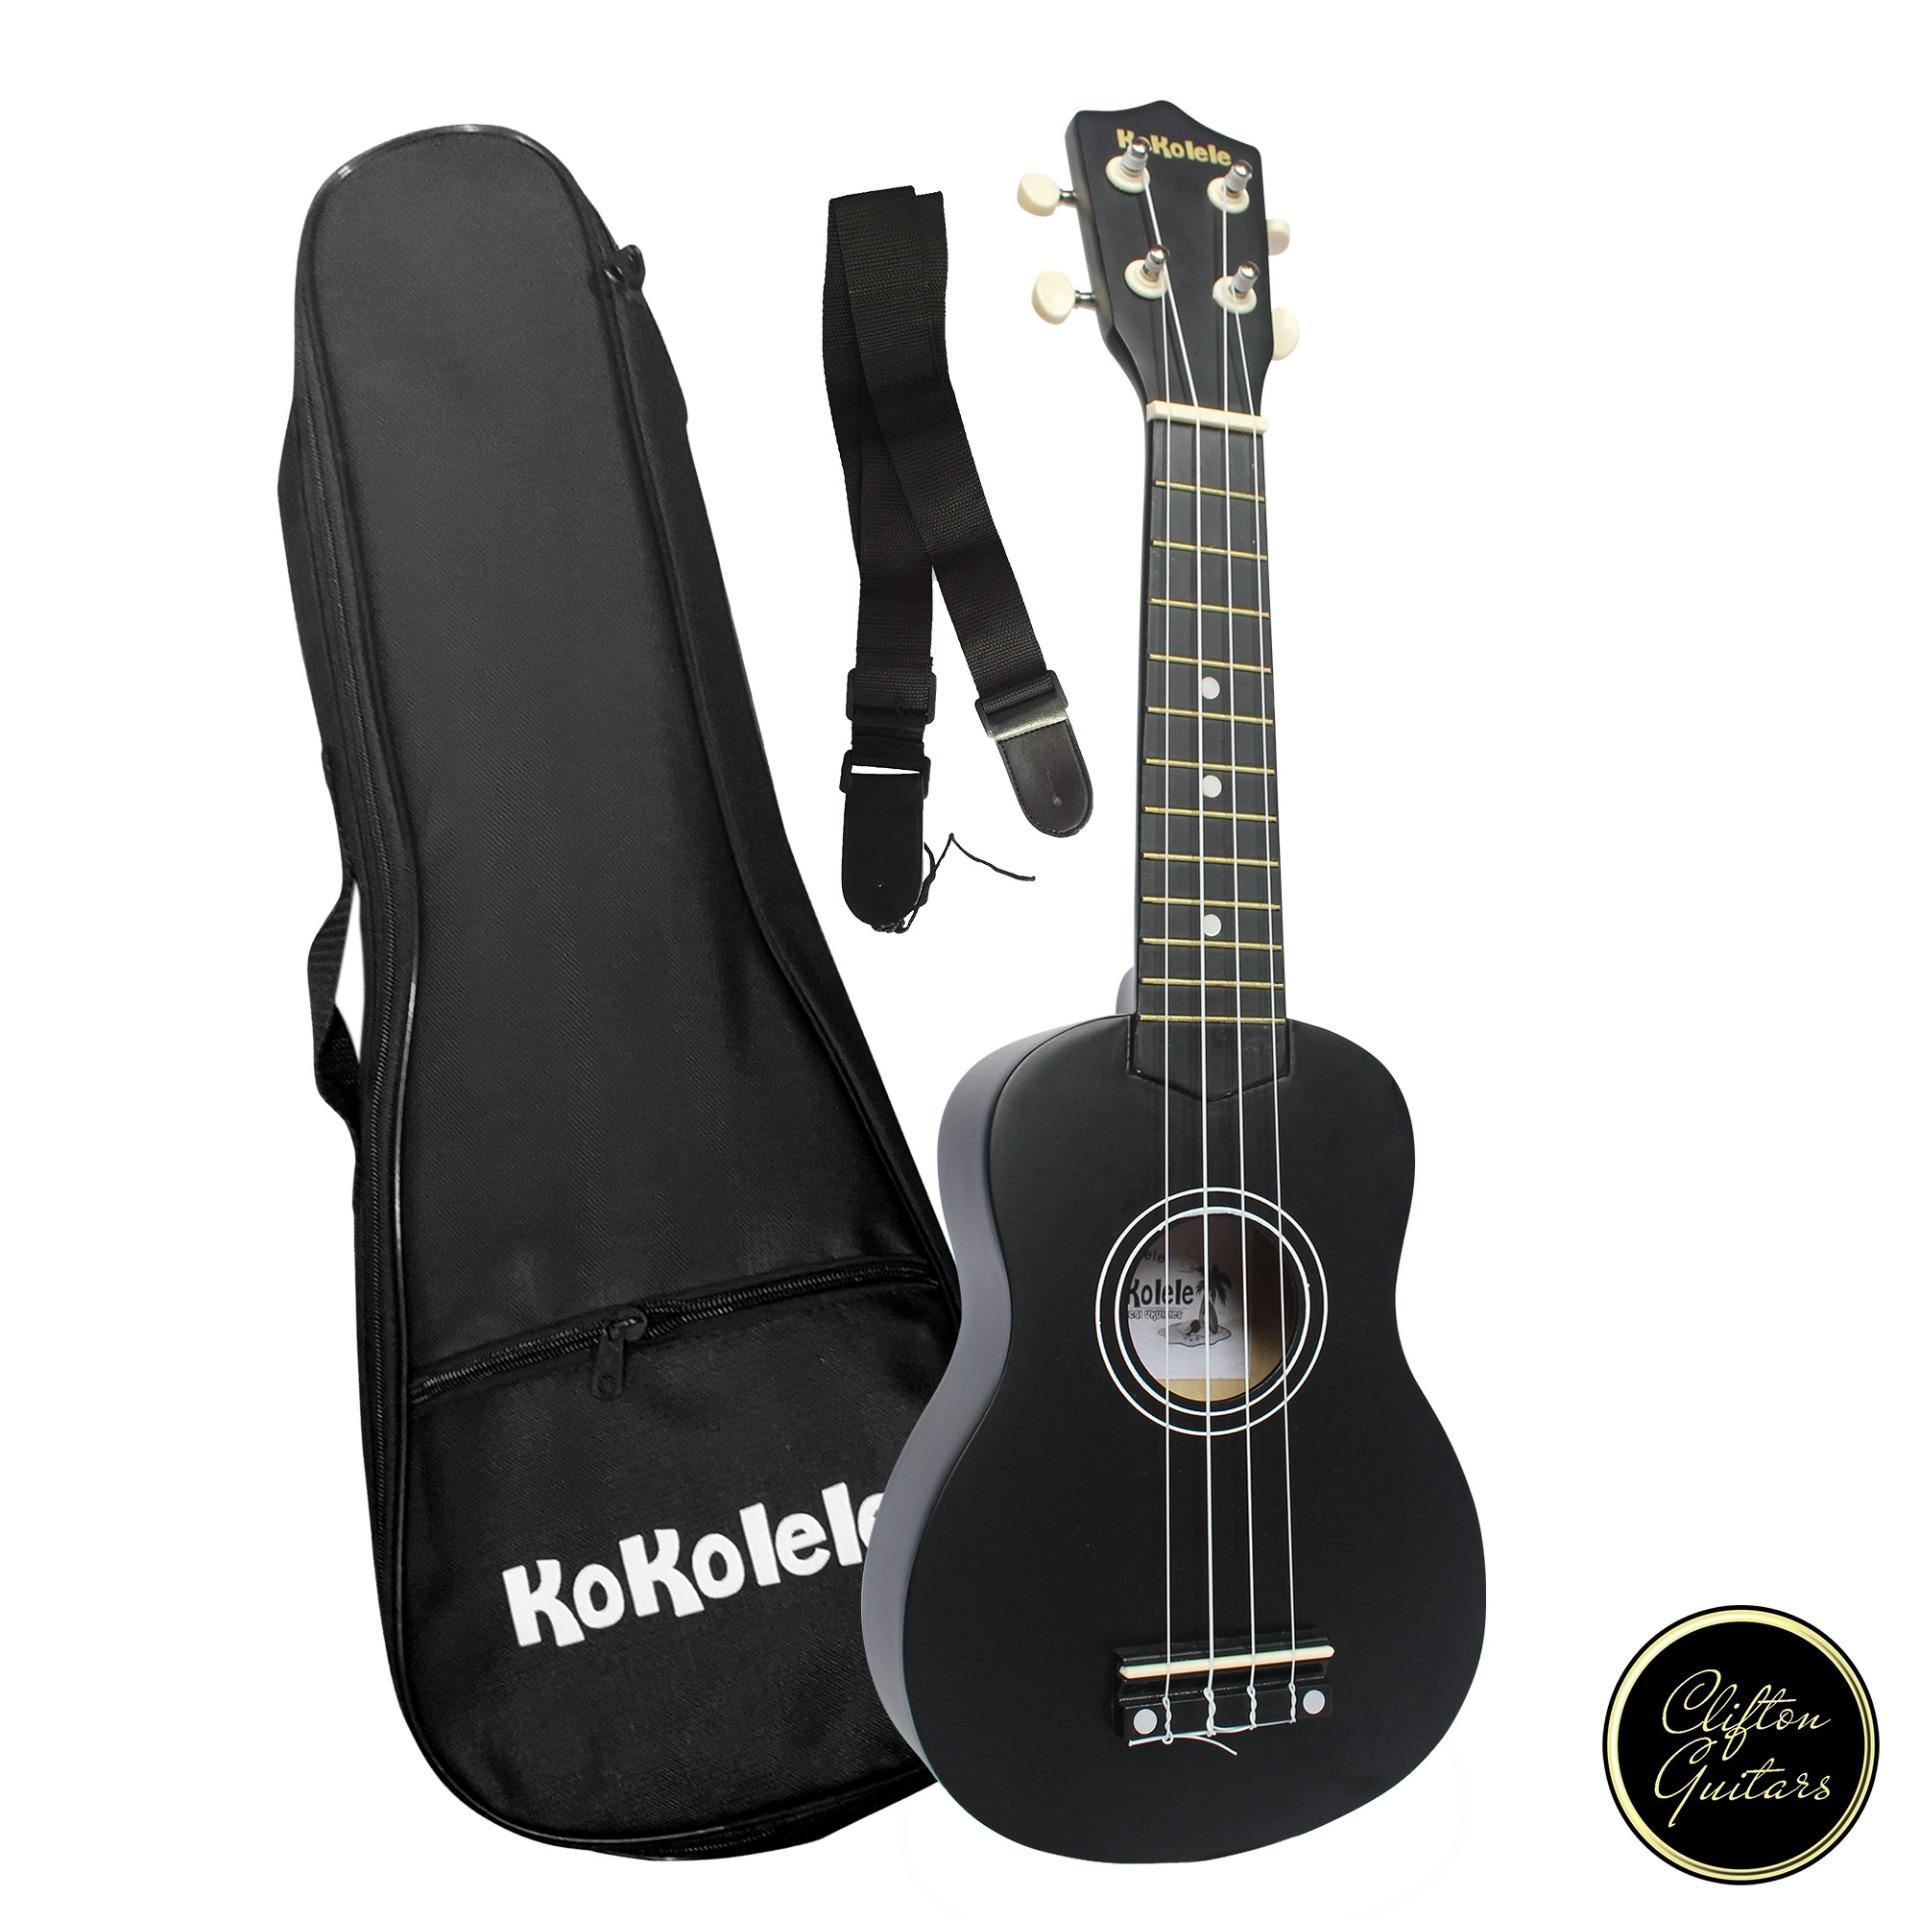 Ukulele Andrew 23 Inch Ukulele Concert Ukulele 4 Nylon Strings Mini Guitar Hawaiian Mahogany Stringed Instruments Rosewood Fingerboard Sports & Entertainment